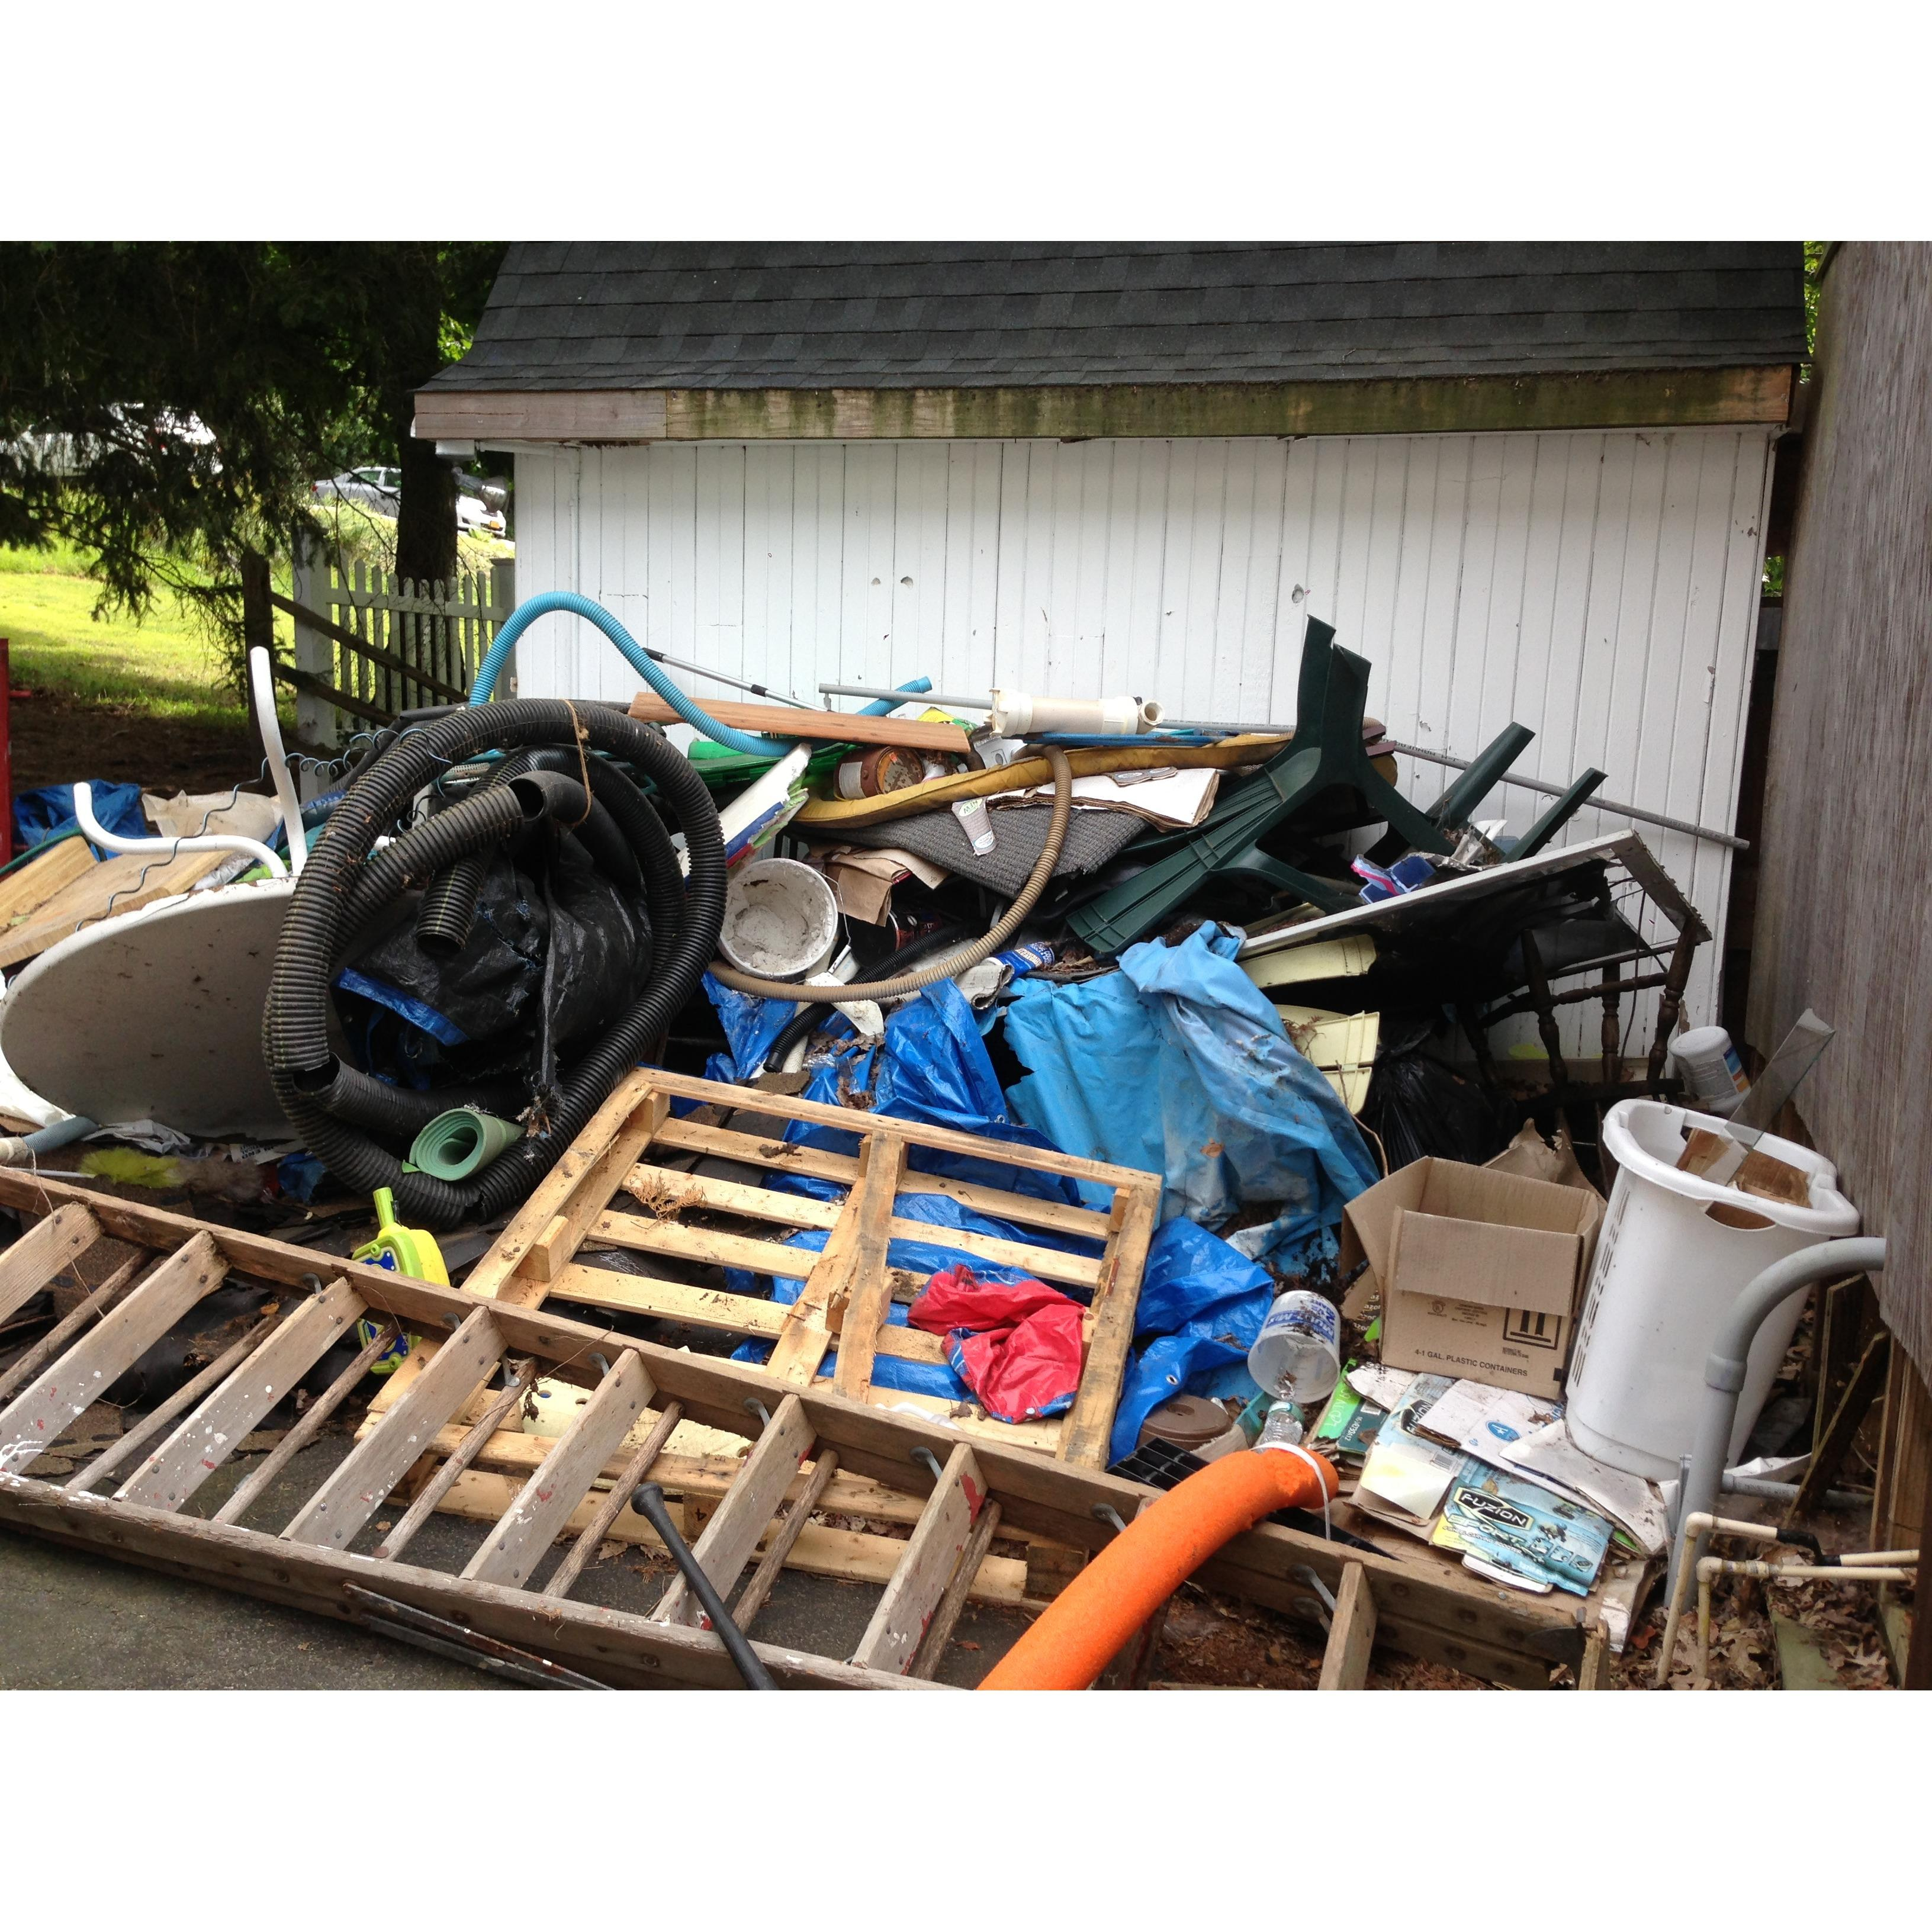 Eric's Landscaping and Junk Removal